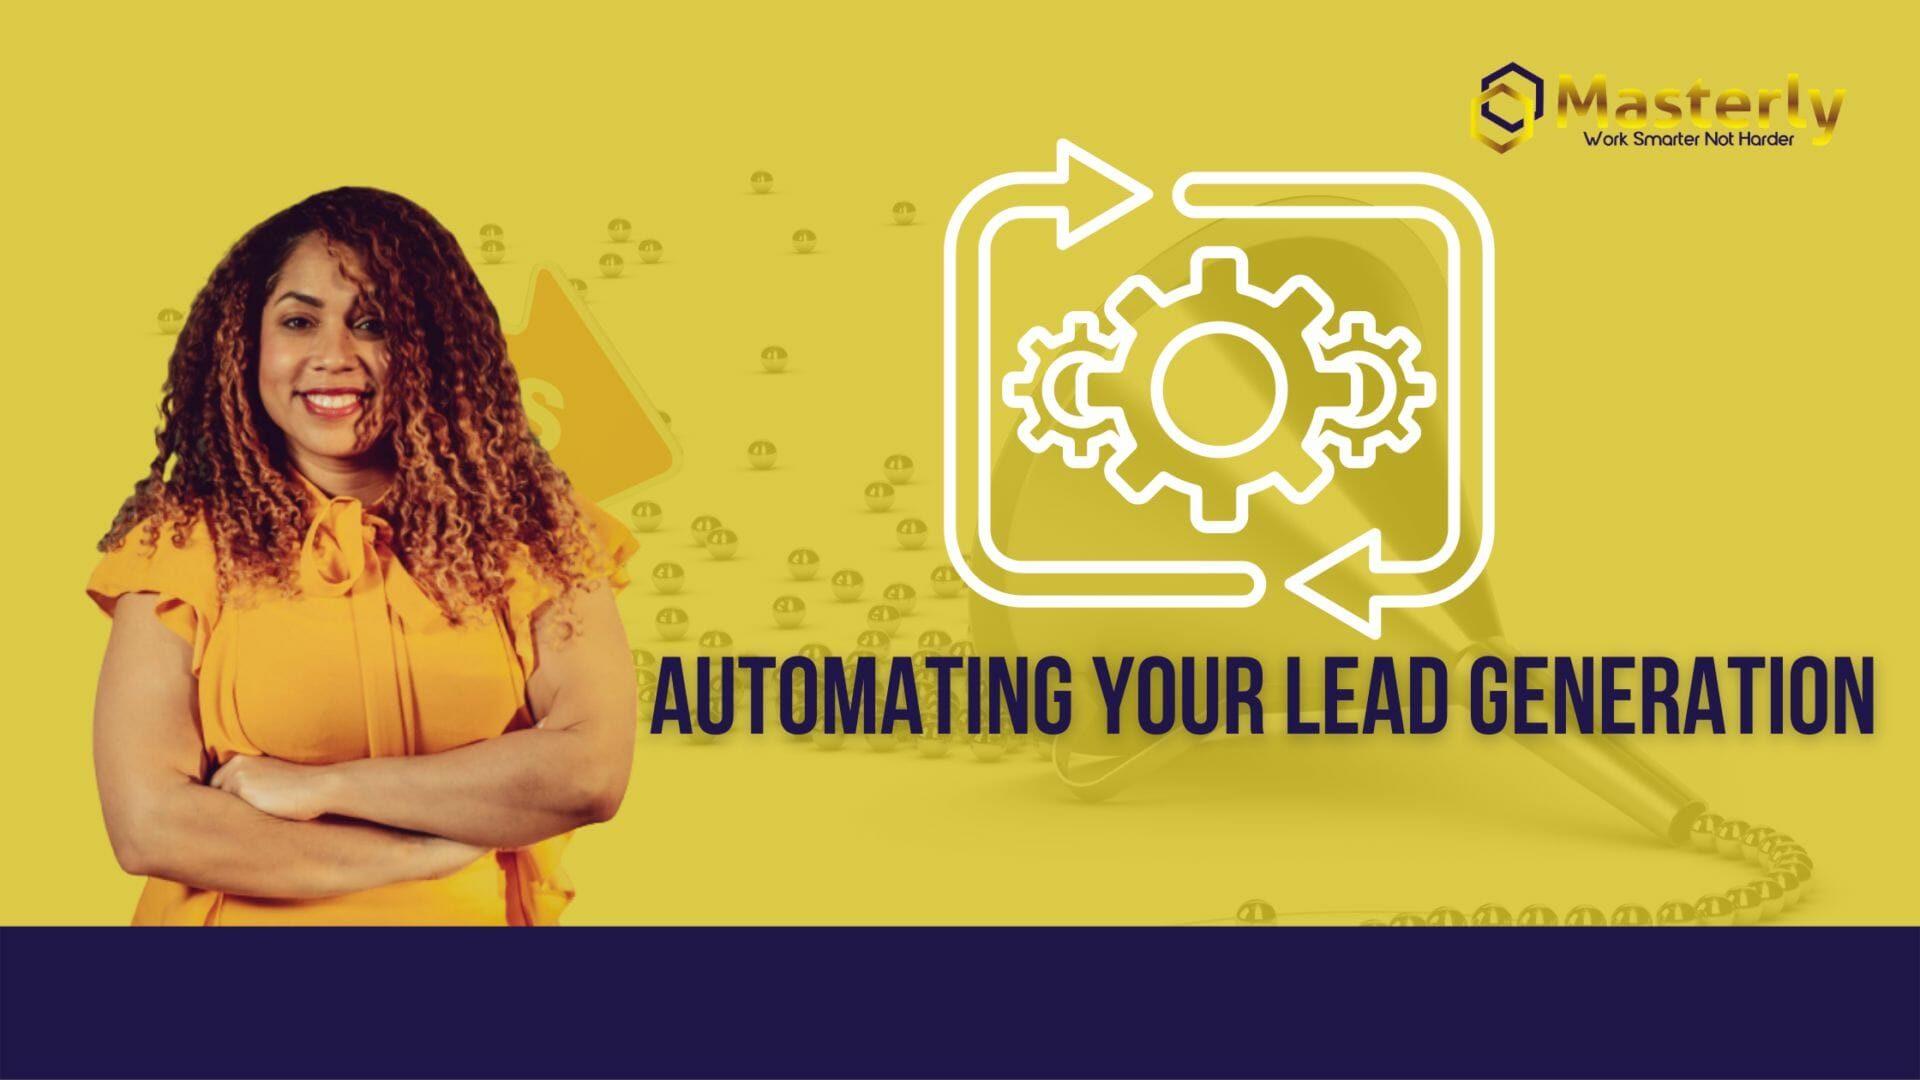 Why you should automate lead generation as a service-based company